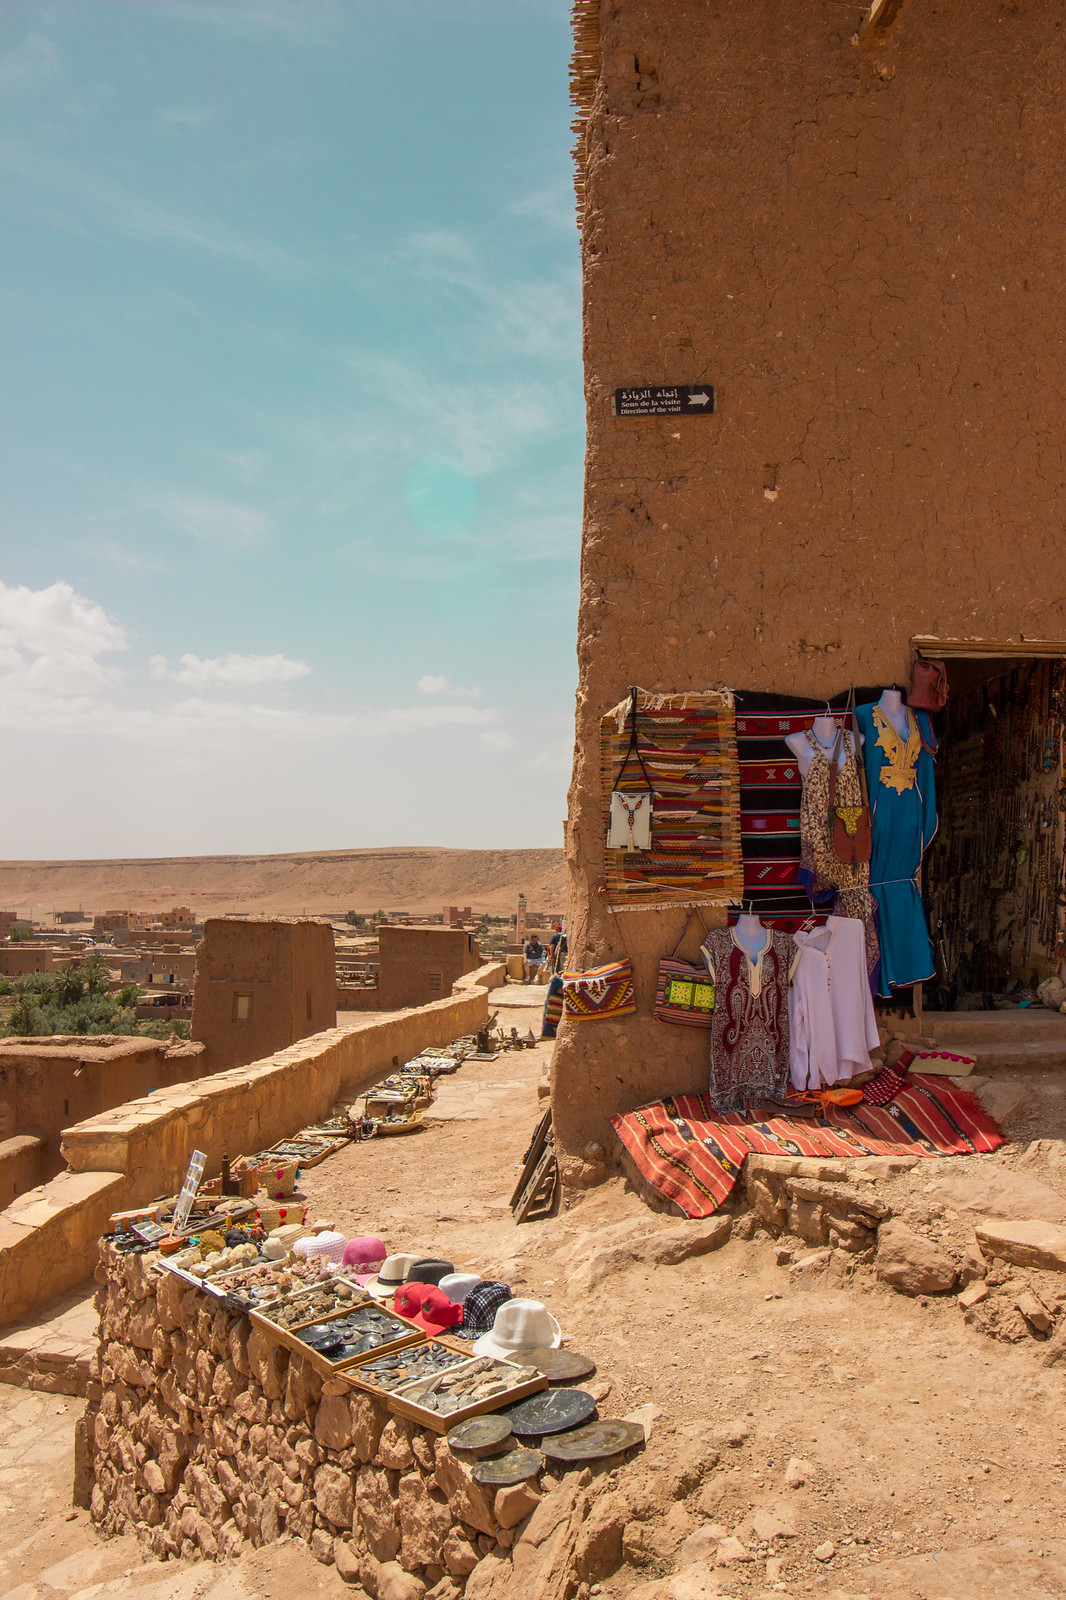 A tourist shop in Ait Ben Haddou